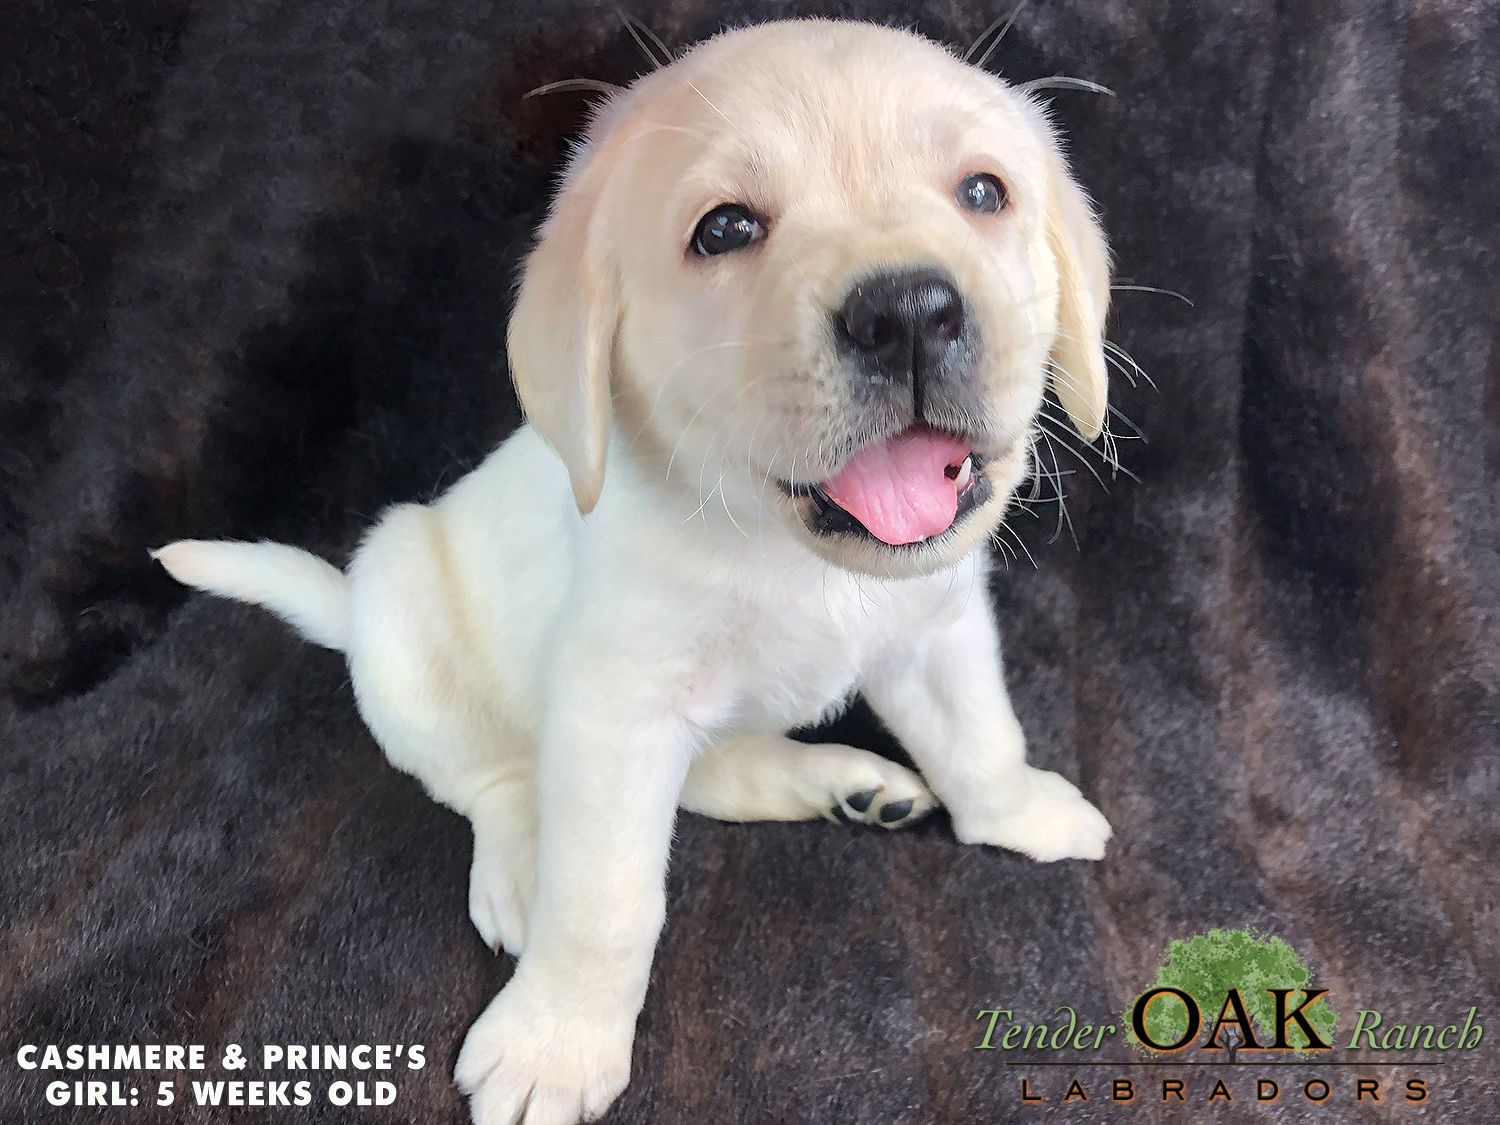 Labrador Puppies For Sale In San Diego Labrador Puppies For Sale Labrador Puppy White Labrador Puppy